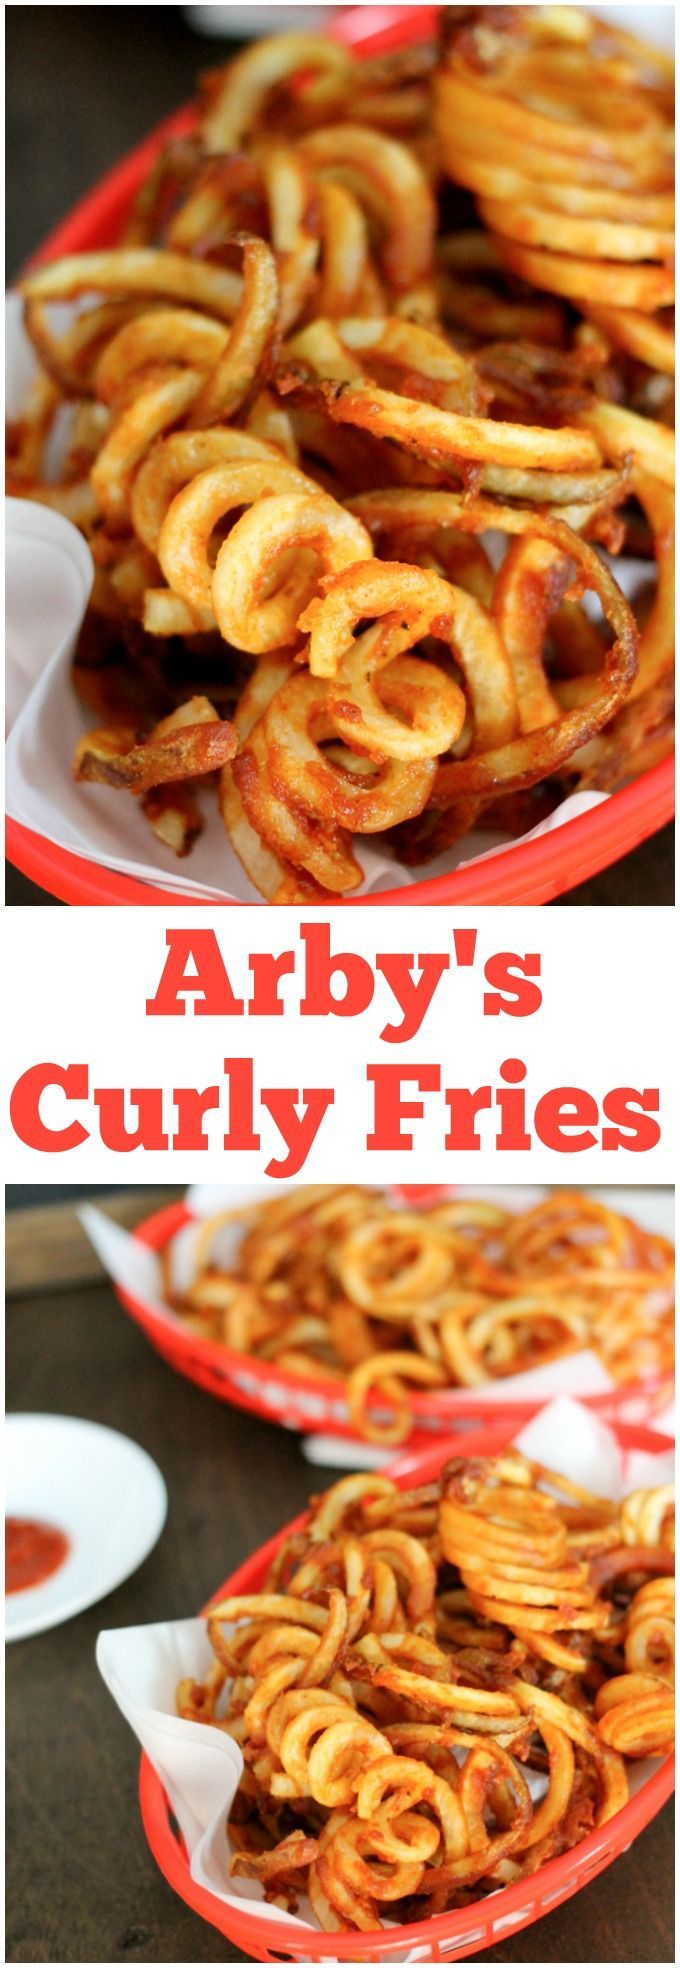 Arby's Curly Fries (Copycat) - Domestic Superhero